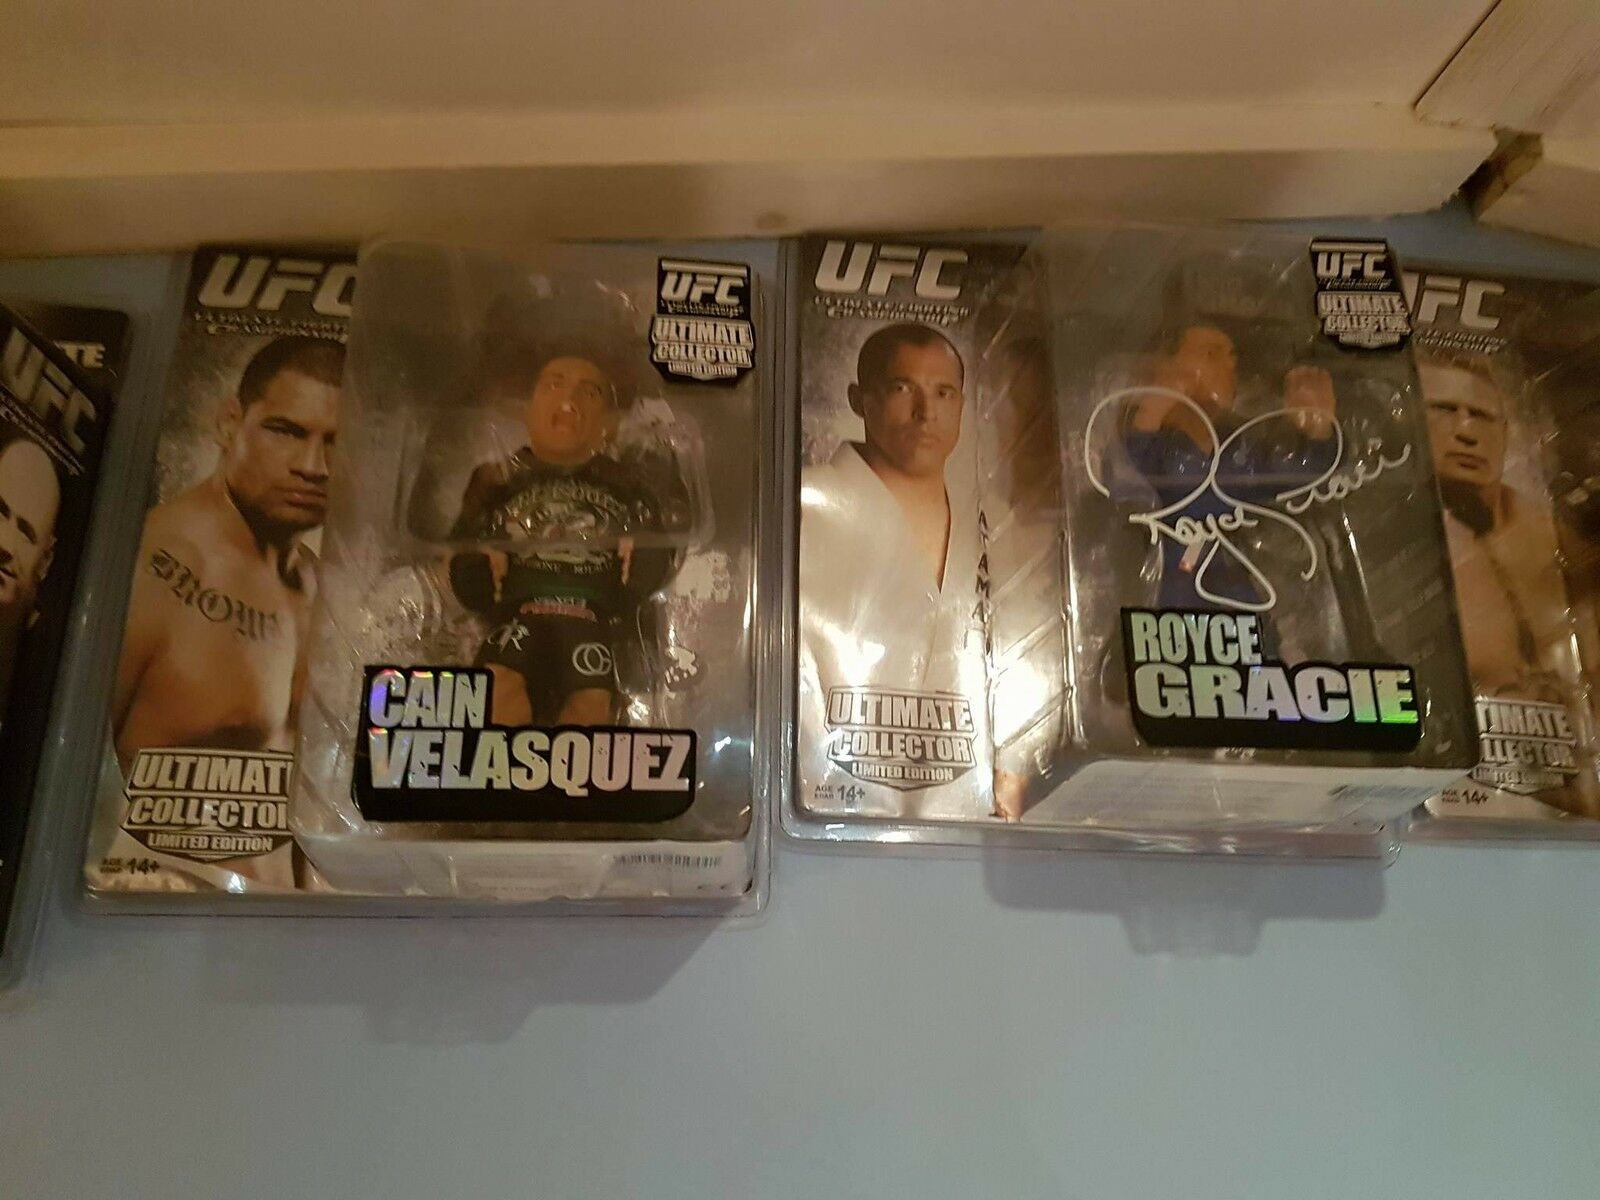 Royce Gracie UFC ROUND 5  LIMTED EDITION SERIES 4 EXTREMELY RARE   SIGNED  prix bas tous les jours